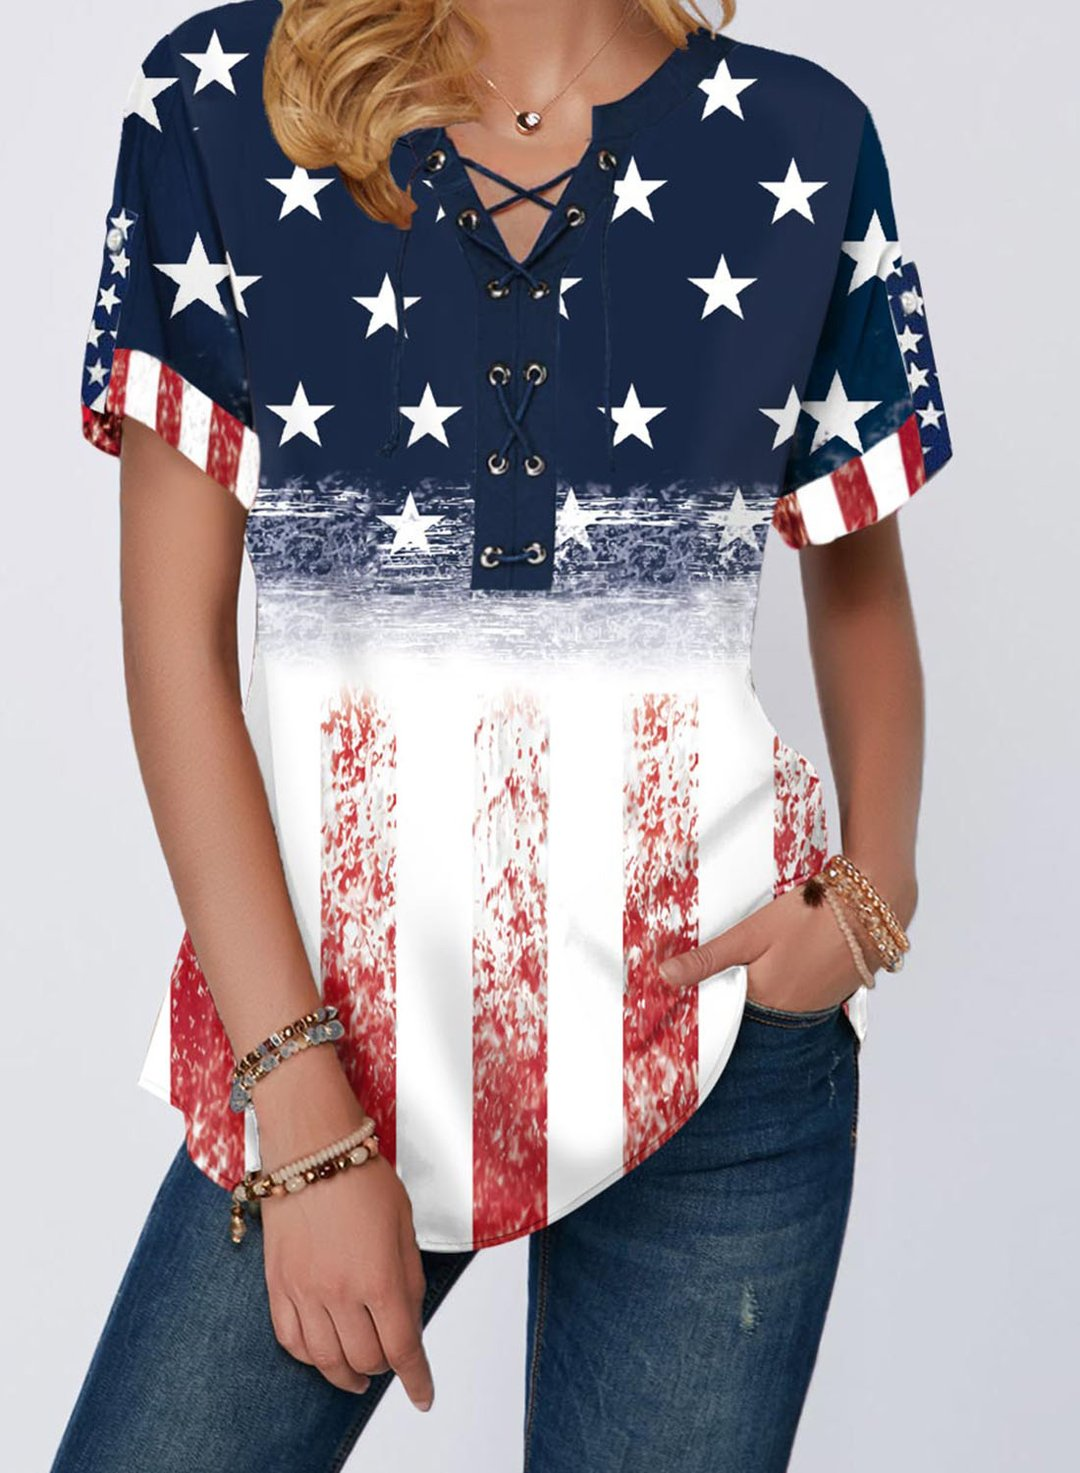 Blue Women's T-shirts Flag Short Sleeve V Neck Daily Basic Tunic T-shirt LC2524987-5